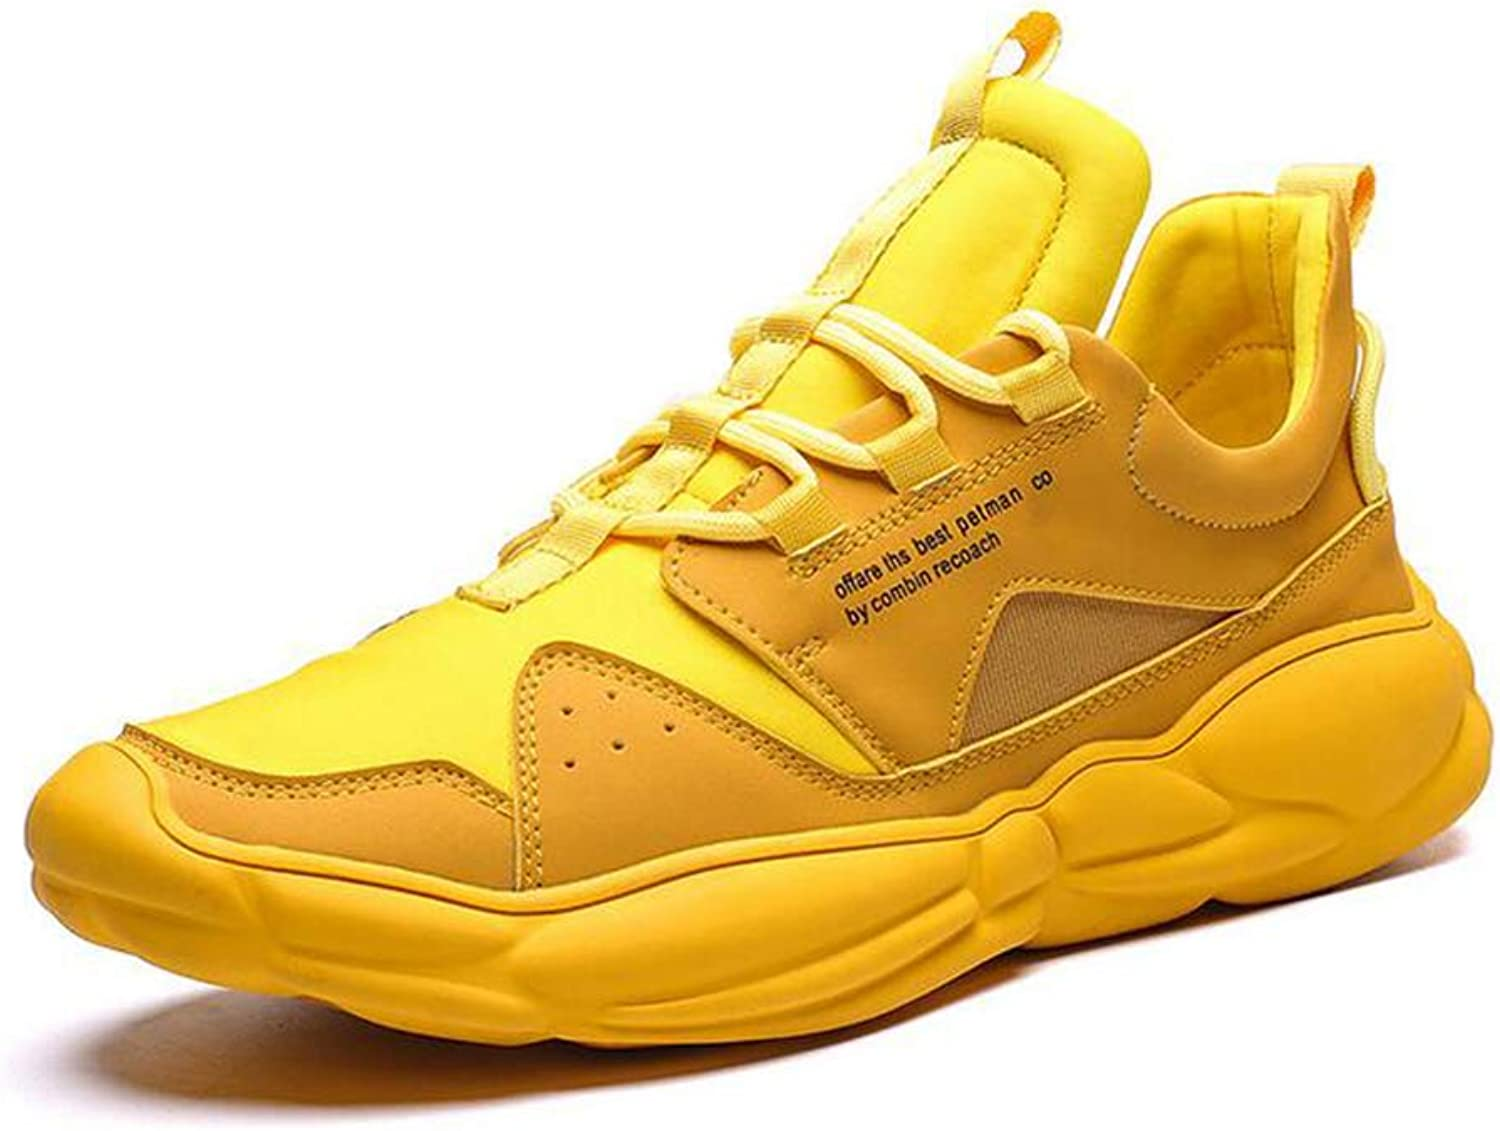 Y-H Men's Running shoes, Spring Fall Flat Casual Sneakers,Comfort Breathable Slip-Ons Training shoes,Yellow,44